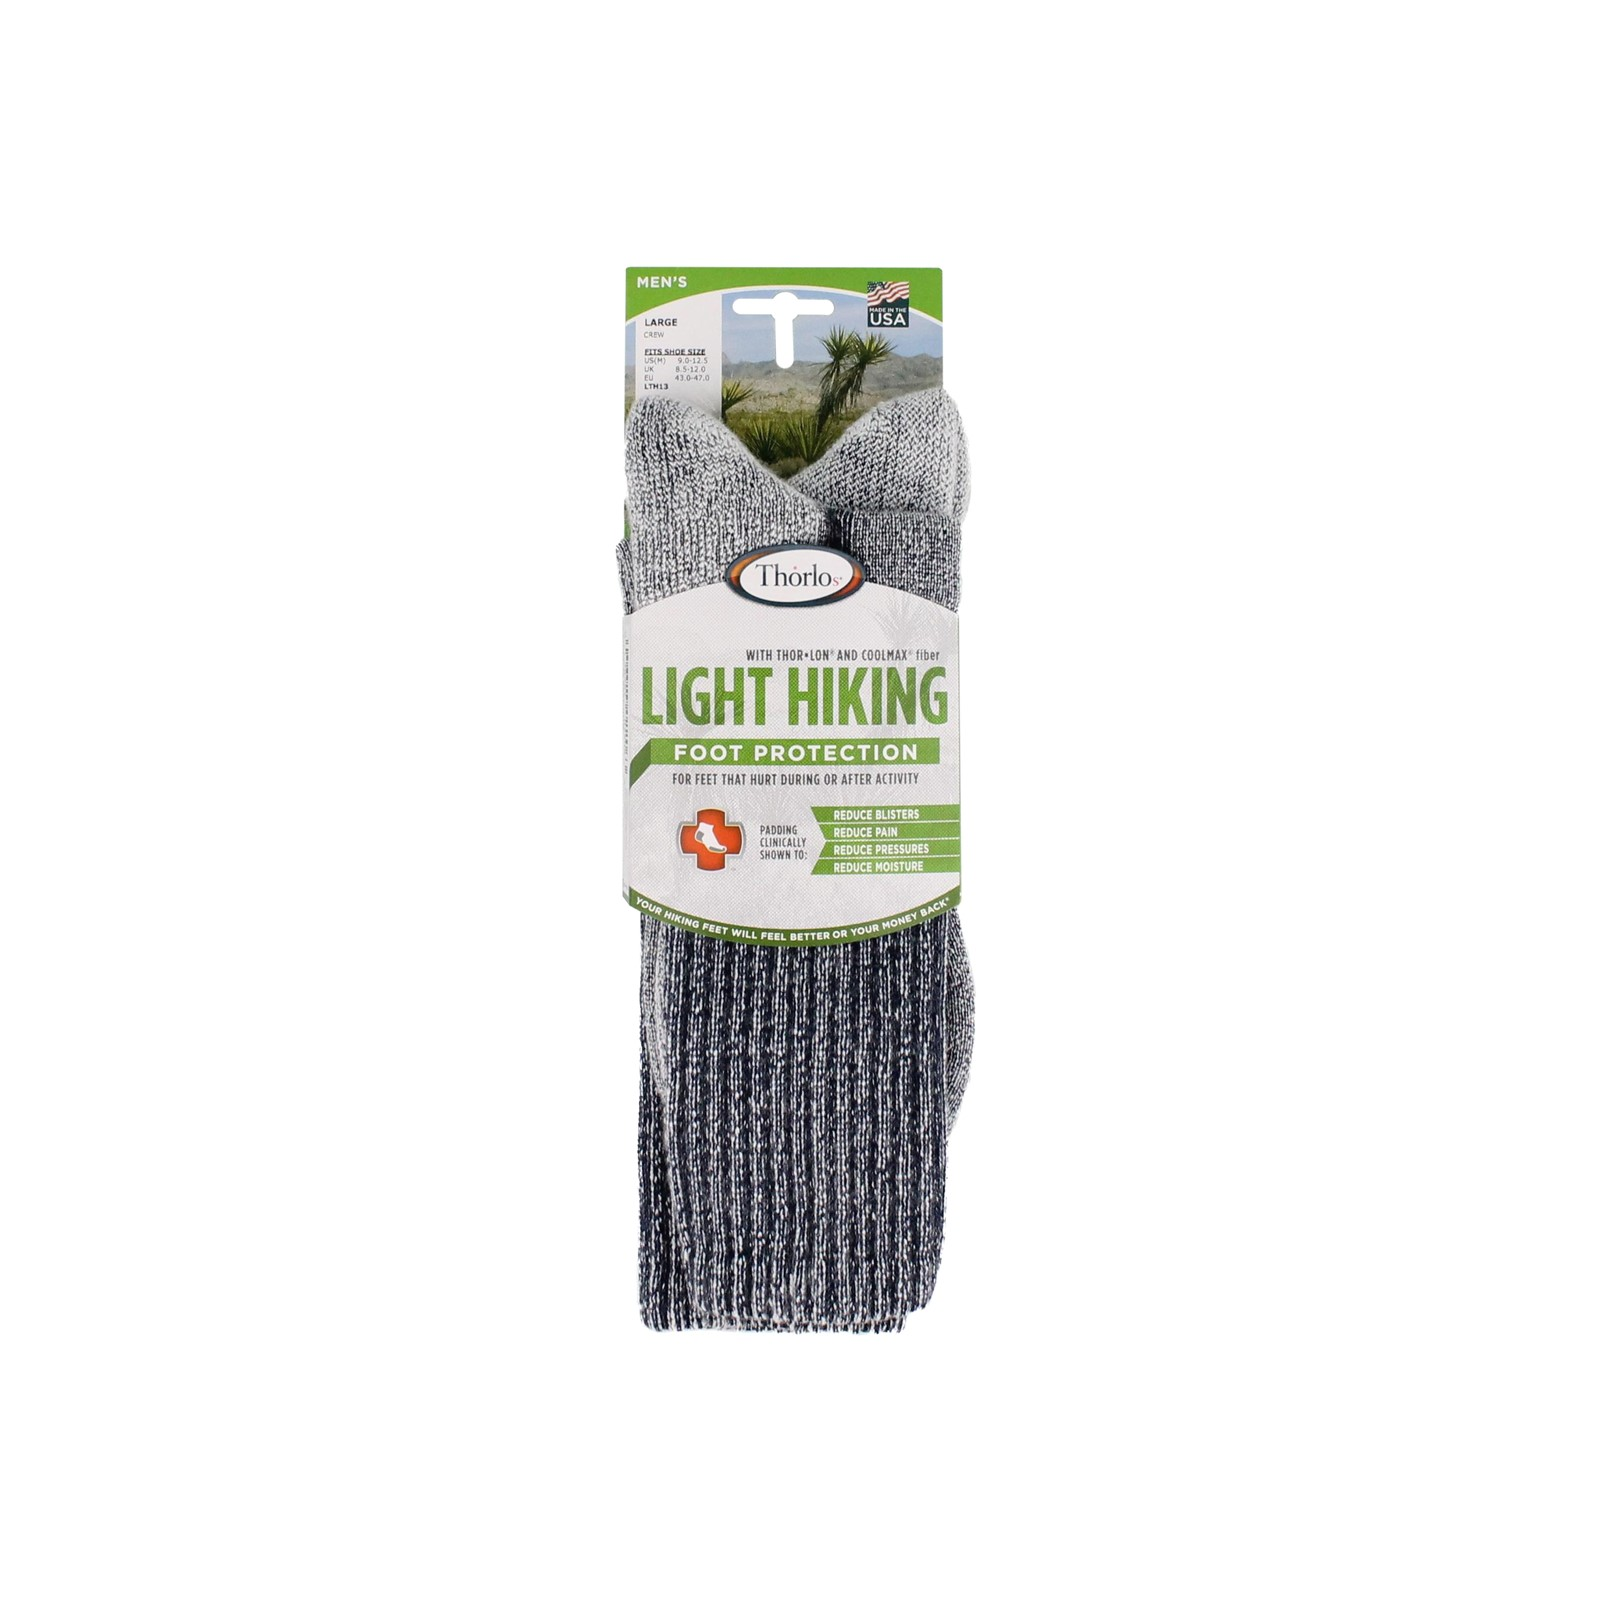 Men's Thorlo, LTH Light Hiking Socks - Large - 1 Pack